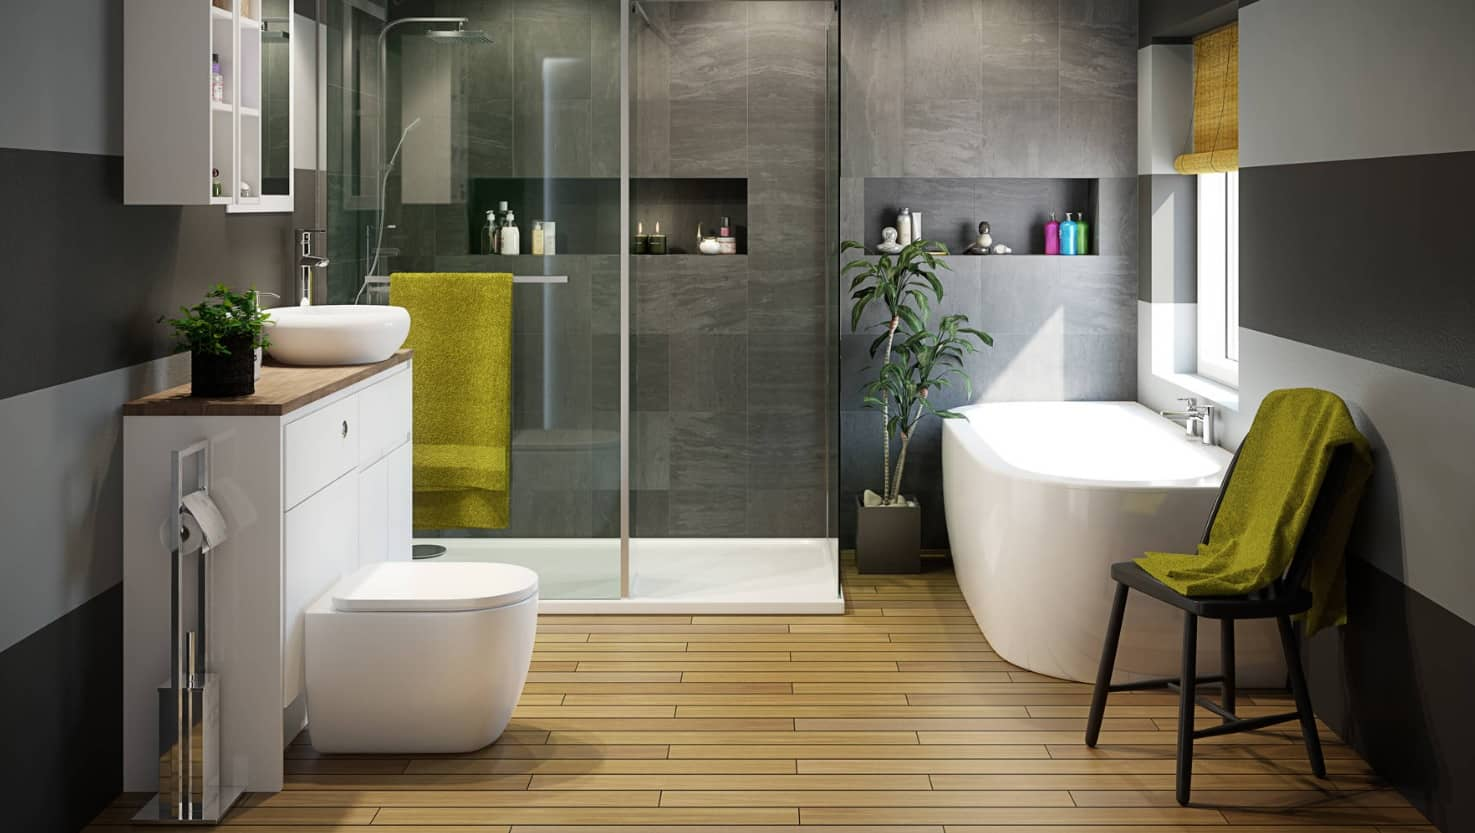 5 Design Ideas that will Make Your Bathroom Beautiful. Luxurious design with laminate and large gray tile